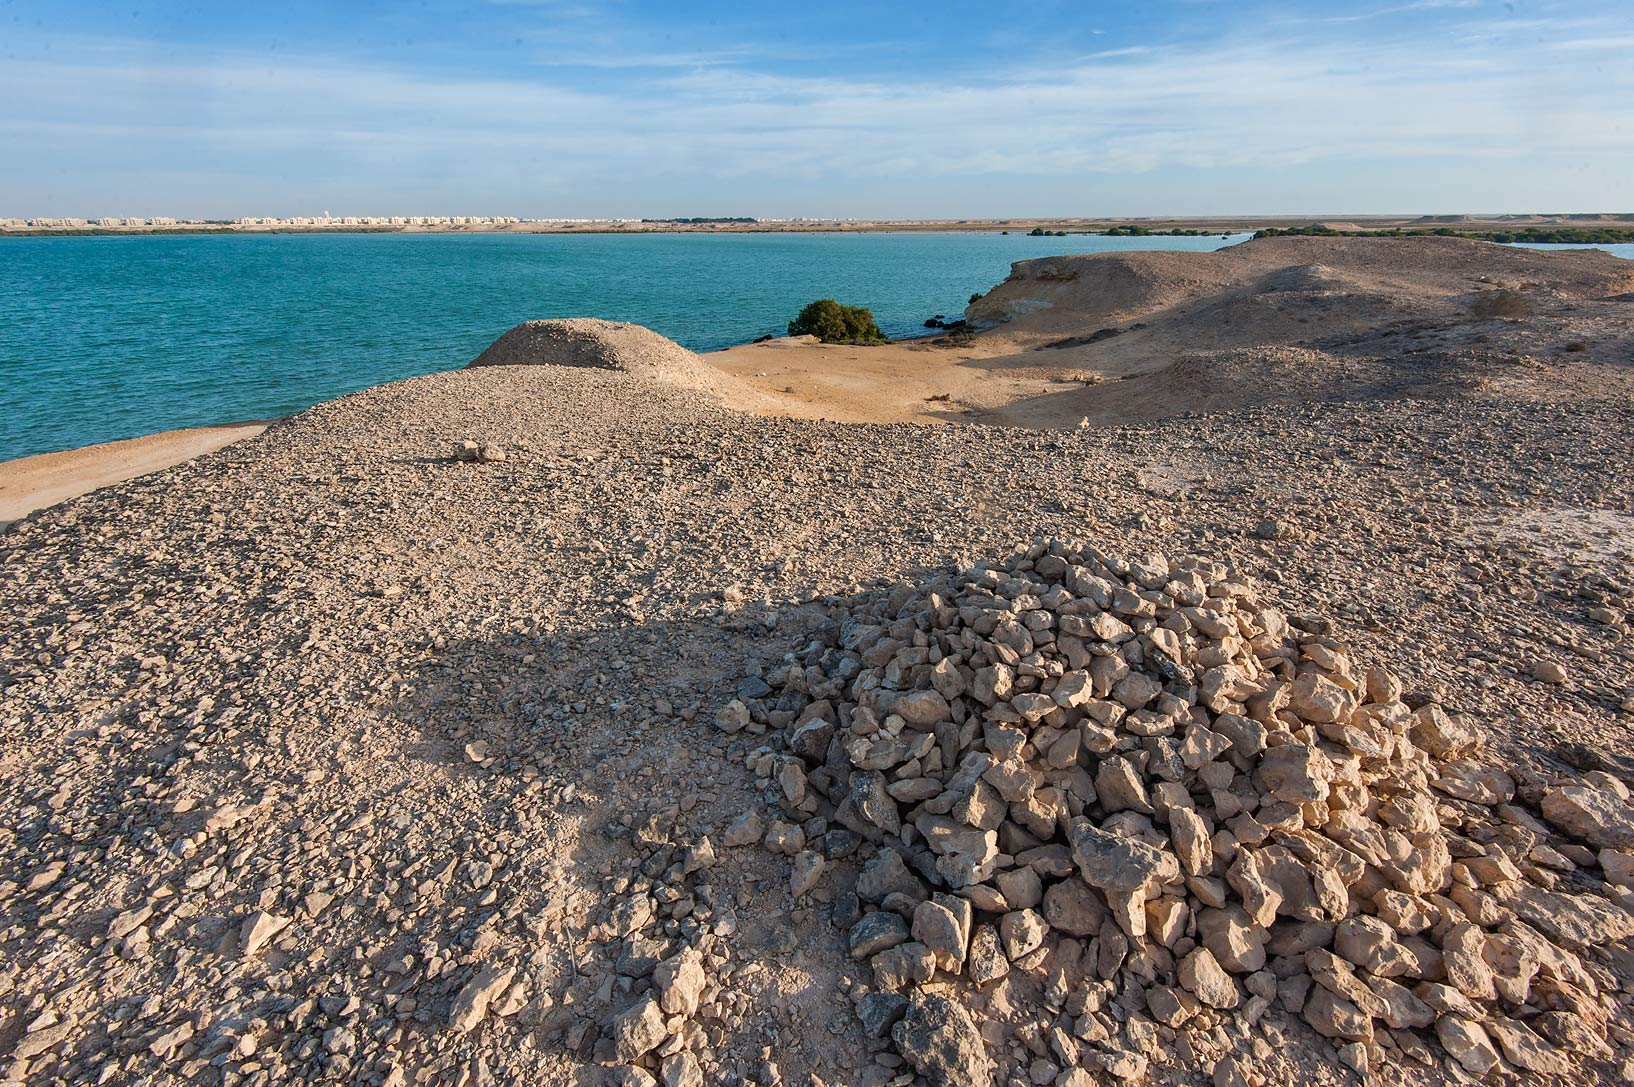 Pile of stones on a hill in Purple Island (Jazirat Bin Ghanim). Al Khor, Qatar